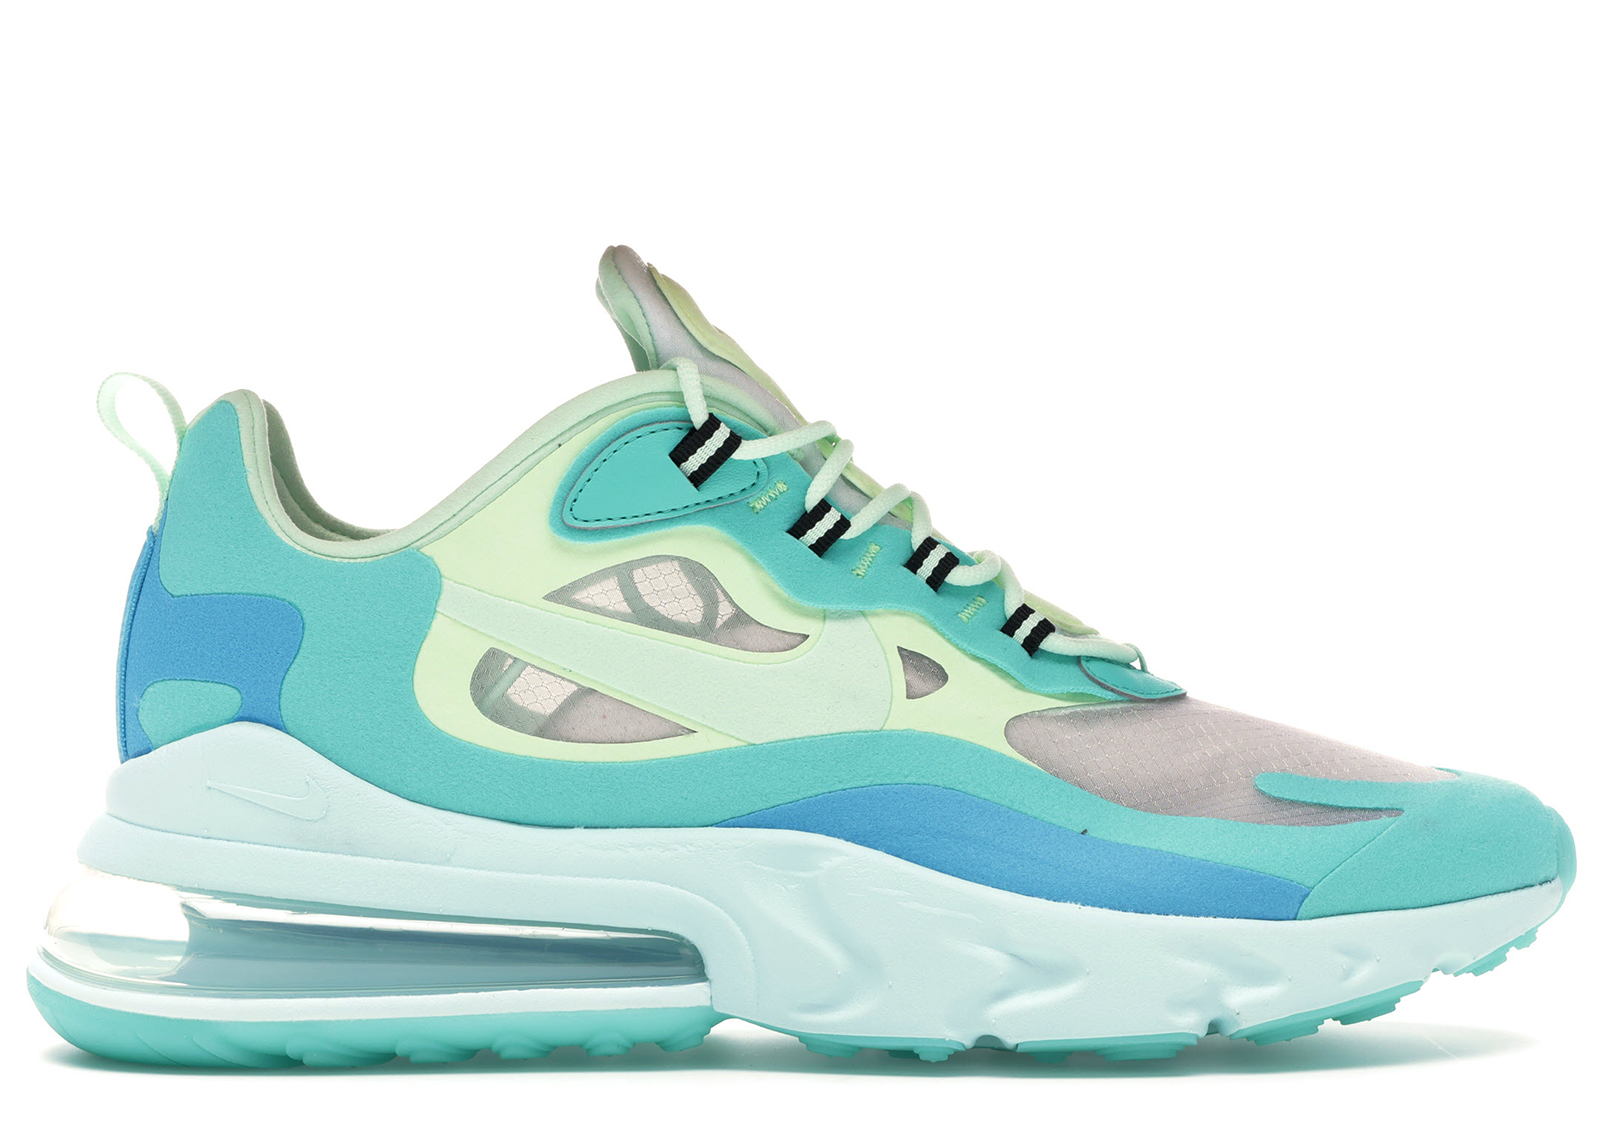 Nike Air Max 270 React Hyper Jade//Frosted Spruce Men/'s Trainers in Various Sizes